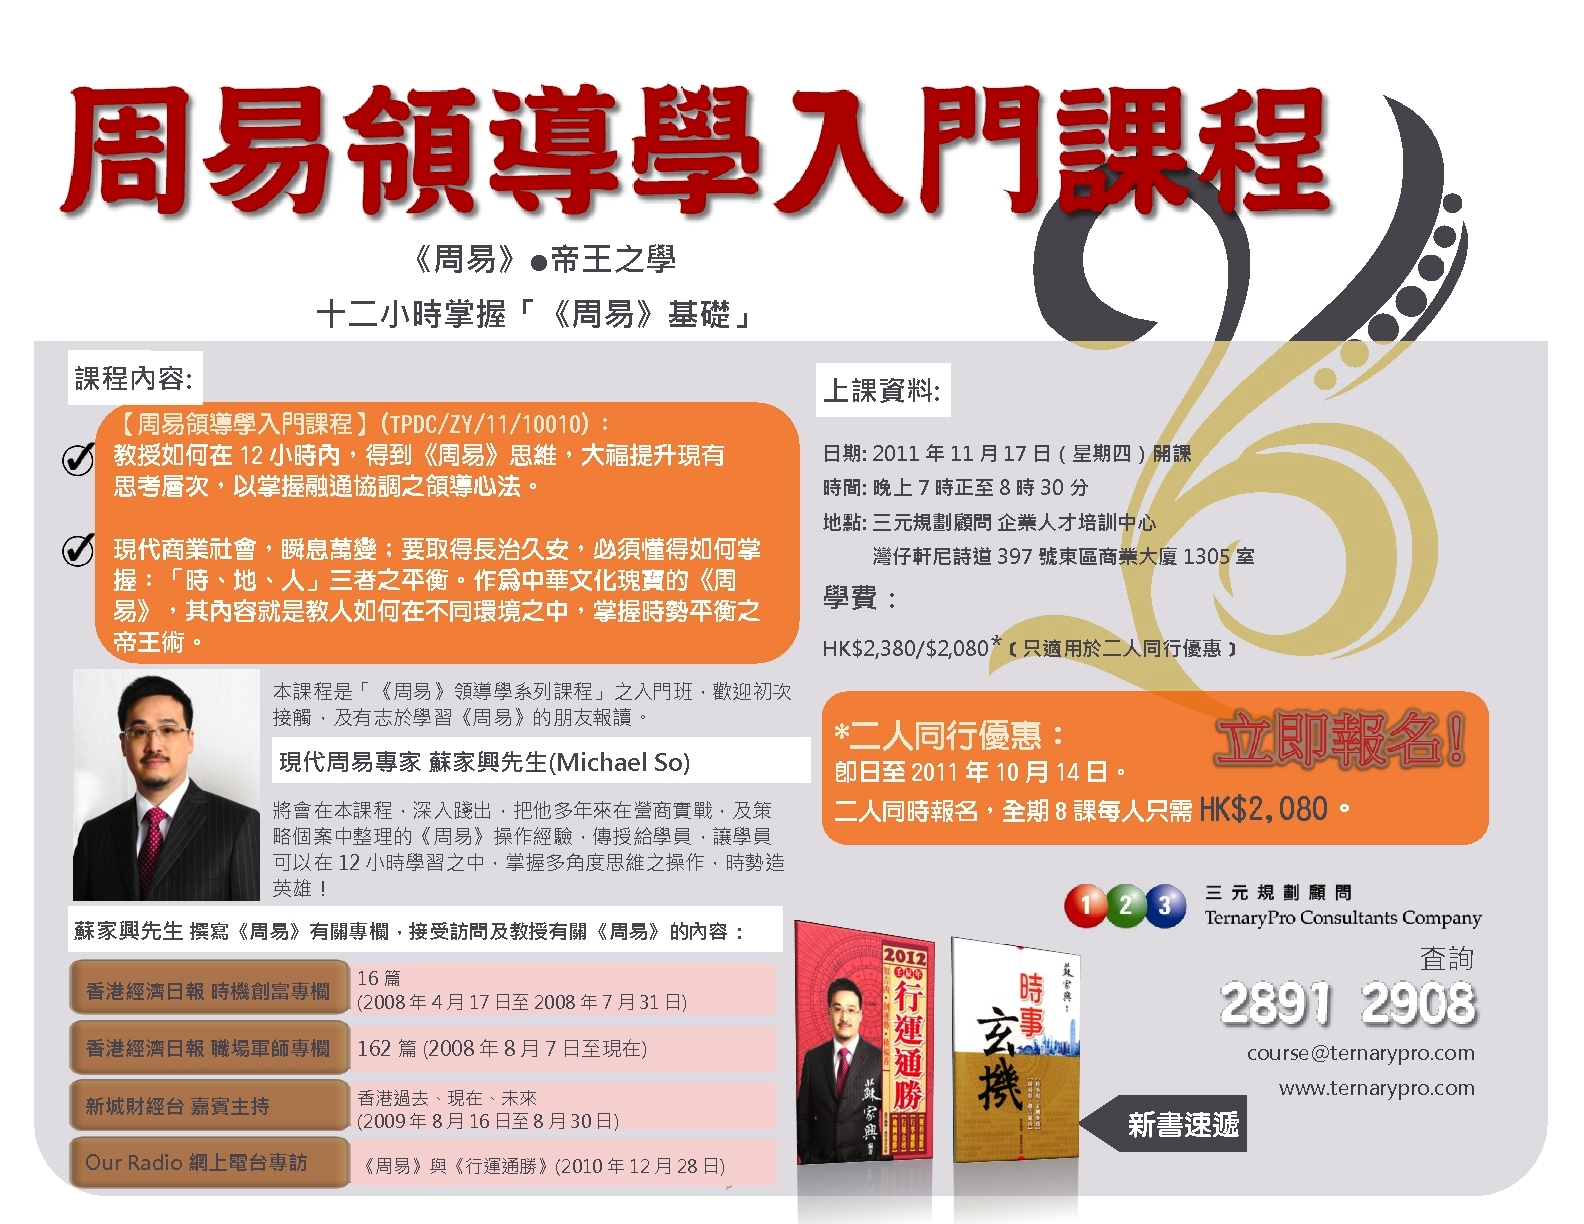 Poster_TPDC_MichaelSo_YI_20111117.jpg